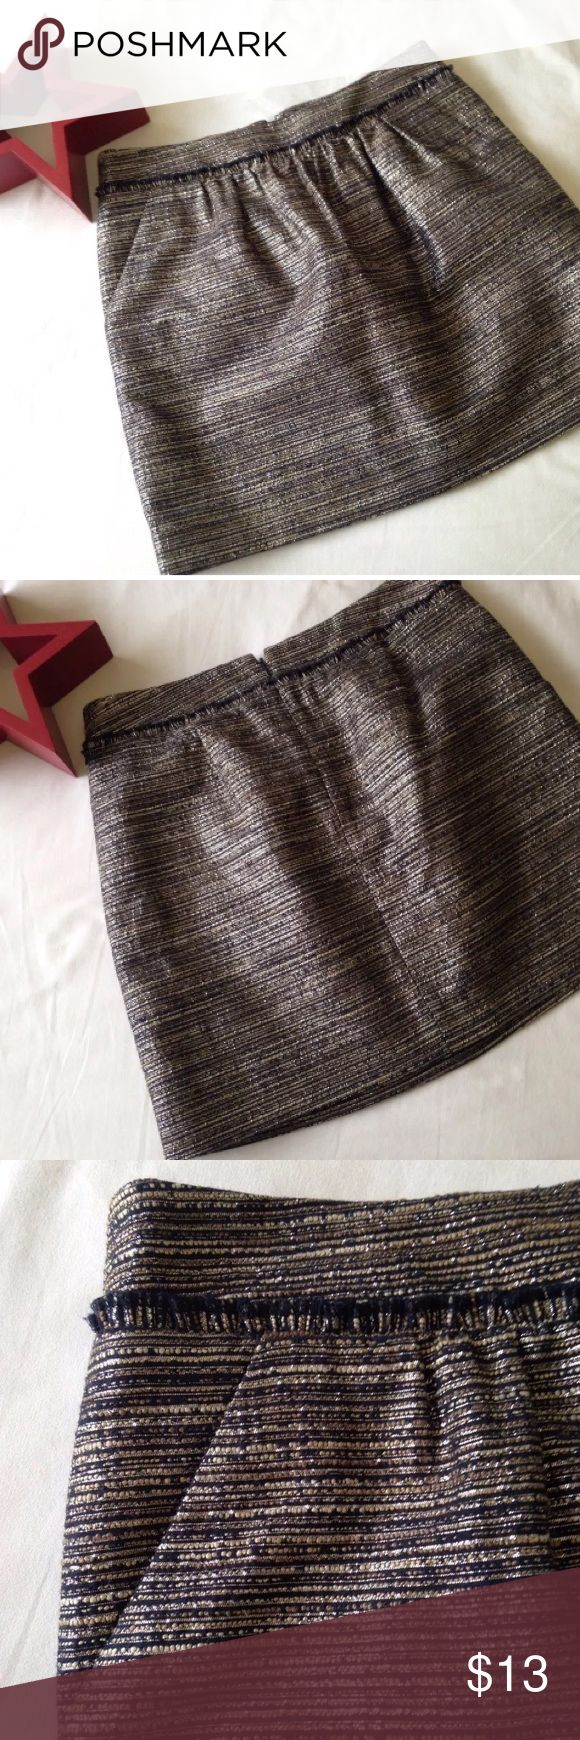 Gap Skirt, Size 4 Gap Skirt. Size 4. Preowned. See photos for details. GAP Skirts